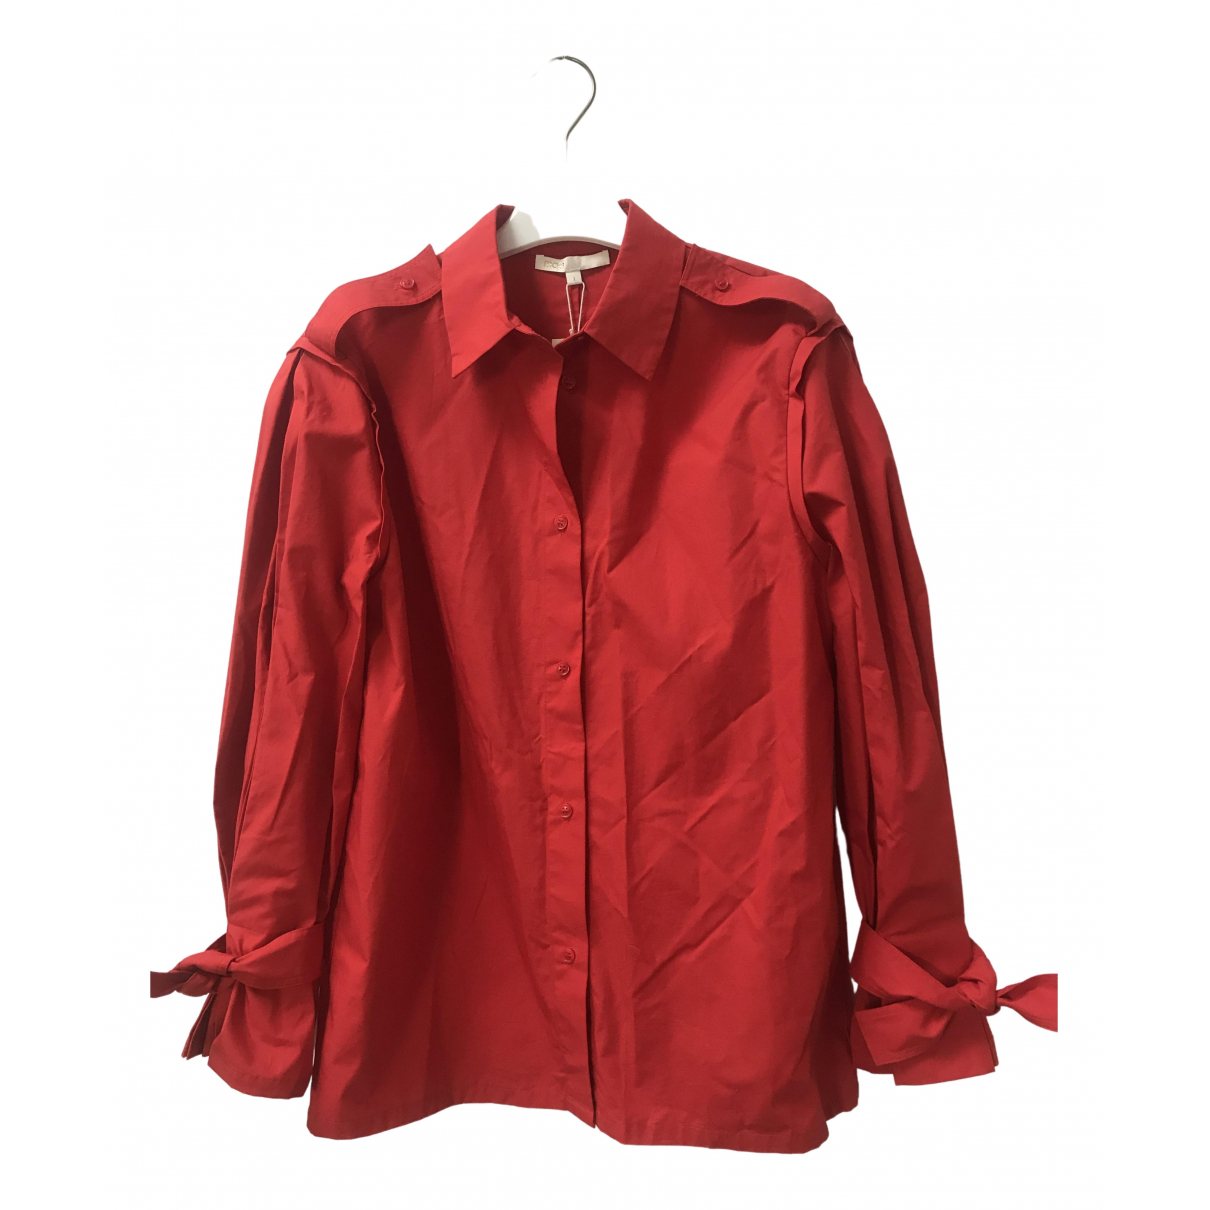 Maje \N Red Cotton  top for Women 36 FR